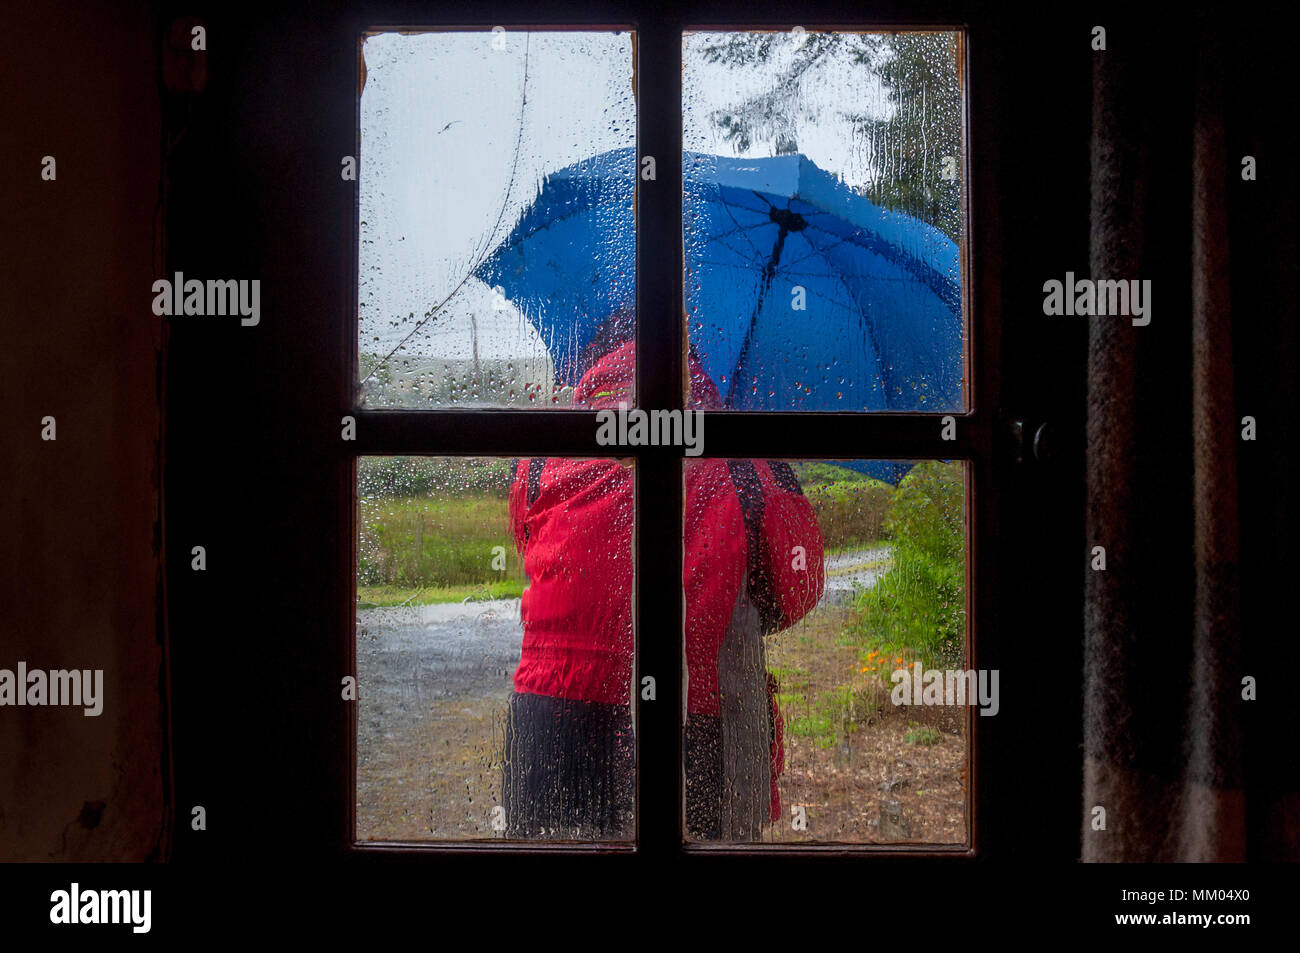 Ardara, County Donegal, Ireland  weather. 9th May 2016. A person struggles to work on a rainy, windy start to the day on Ireland's west coast. Seen through the window of a cottage. Credit: Richard Wayman/Alamy Live News Stock Photo